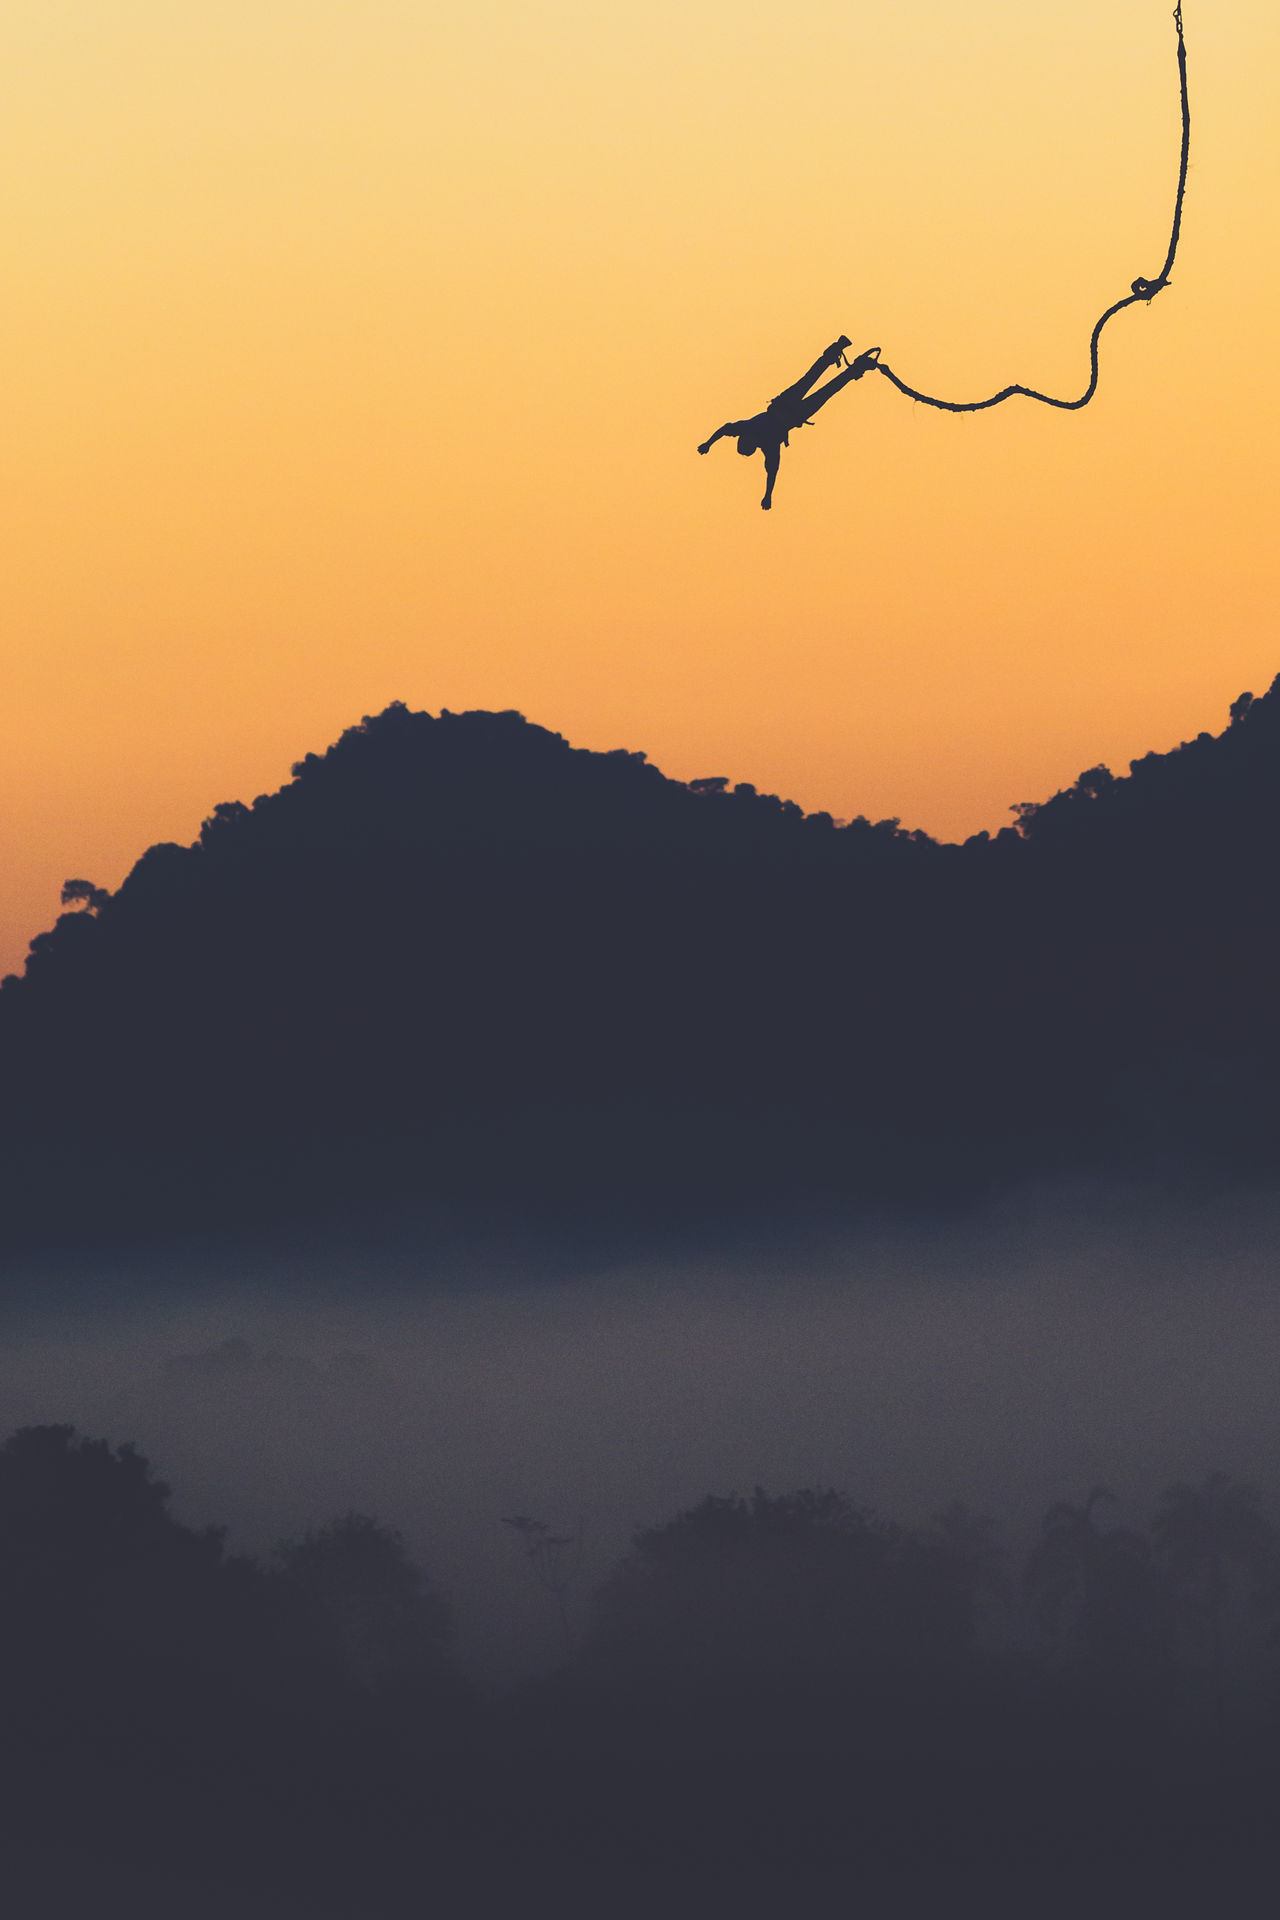 Beauty In Nature Bungee Jumping Clear Sky Day Flying Fog Haze Mountain Nature Outdoors People Scenics Silhouette Sky Tranquility